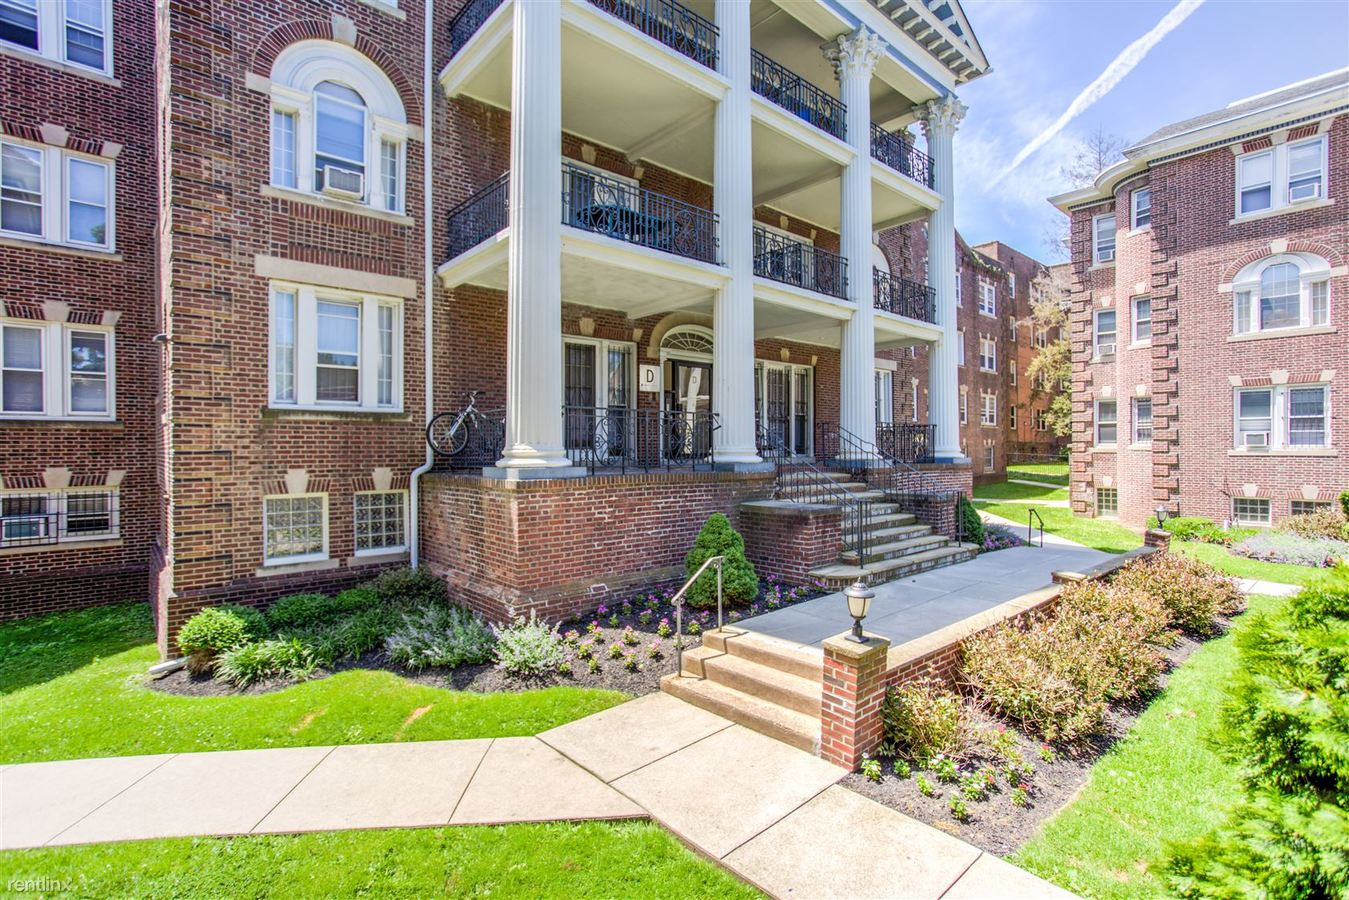 1 Bedroom 1 Bathroom Apartment For Rent At Spruce Hill Court In Philadelphia,  PA